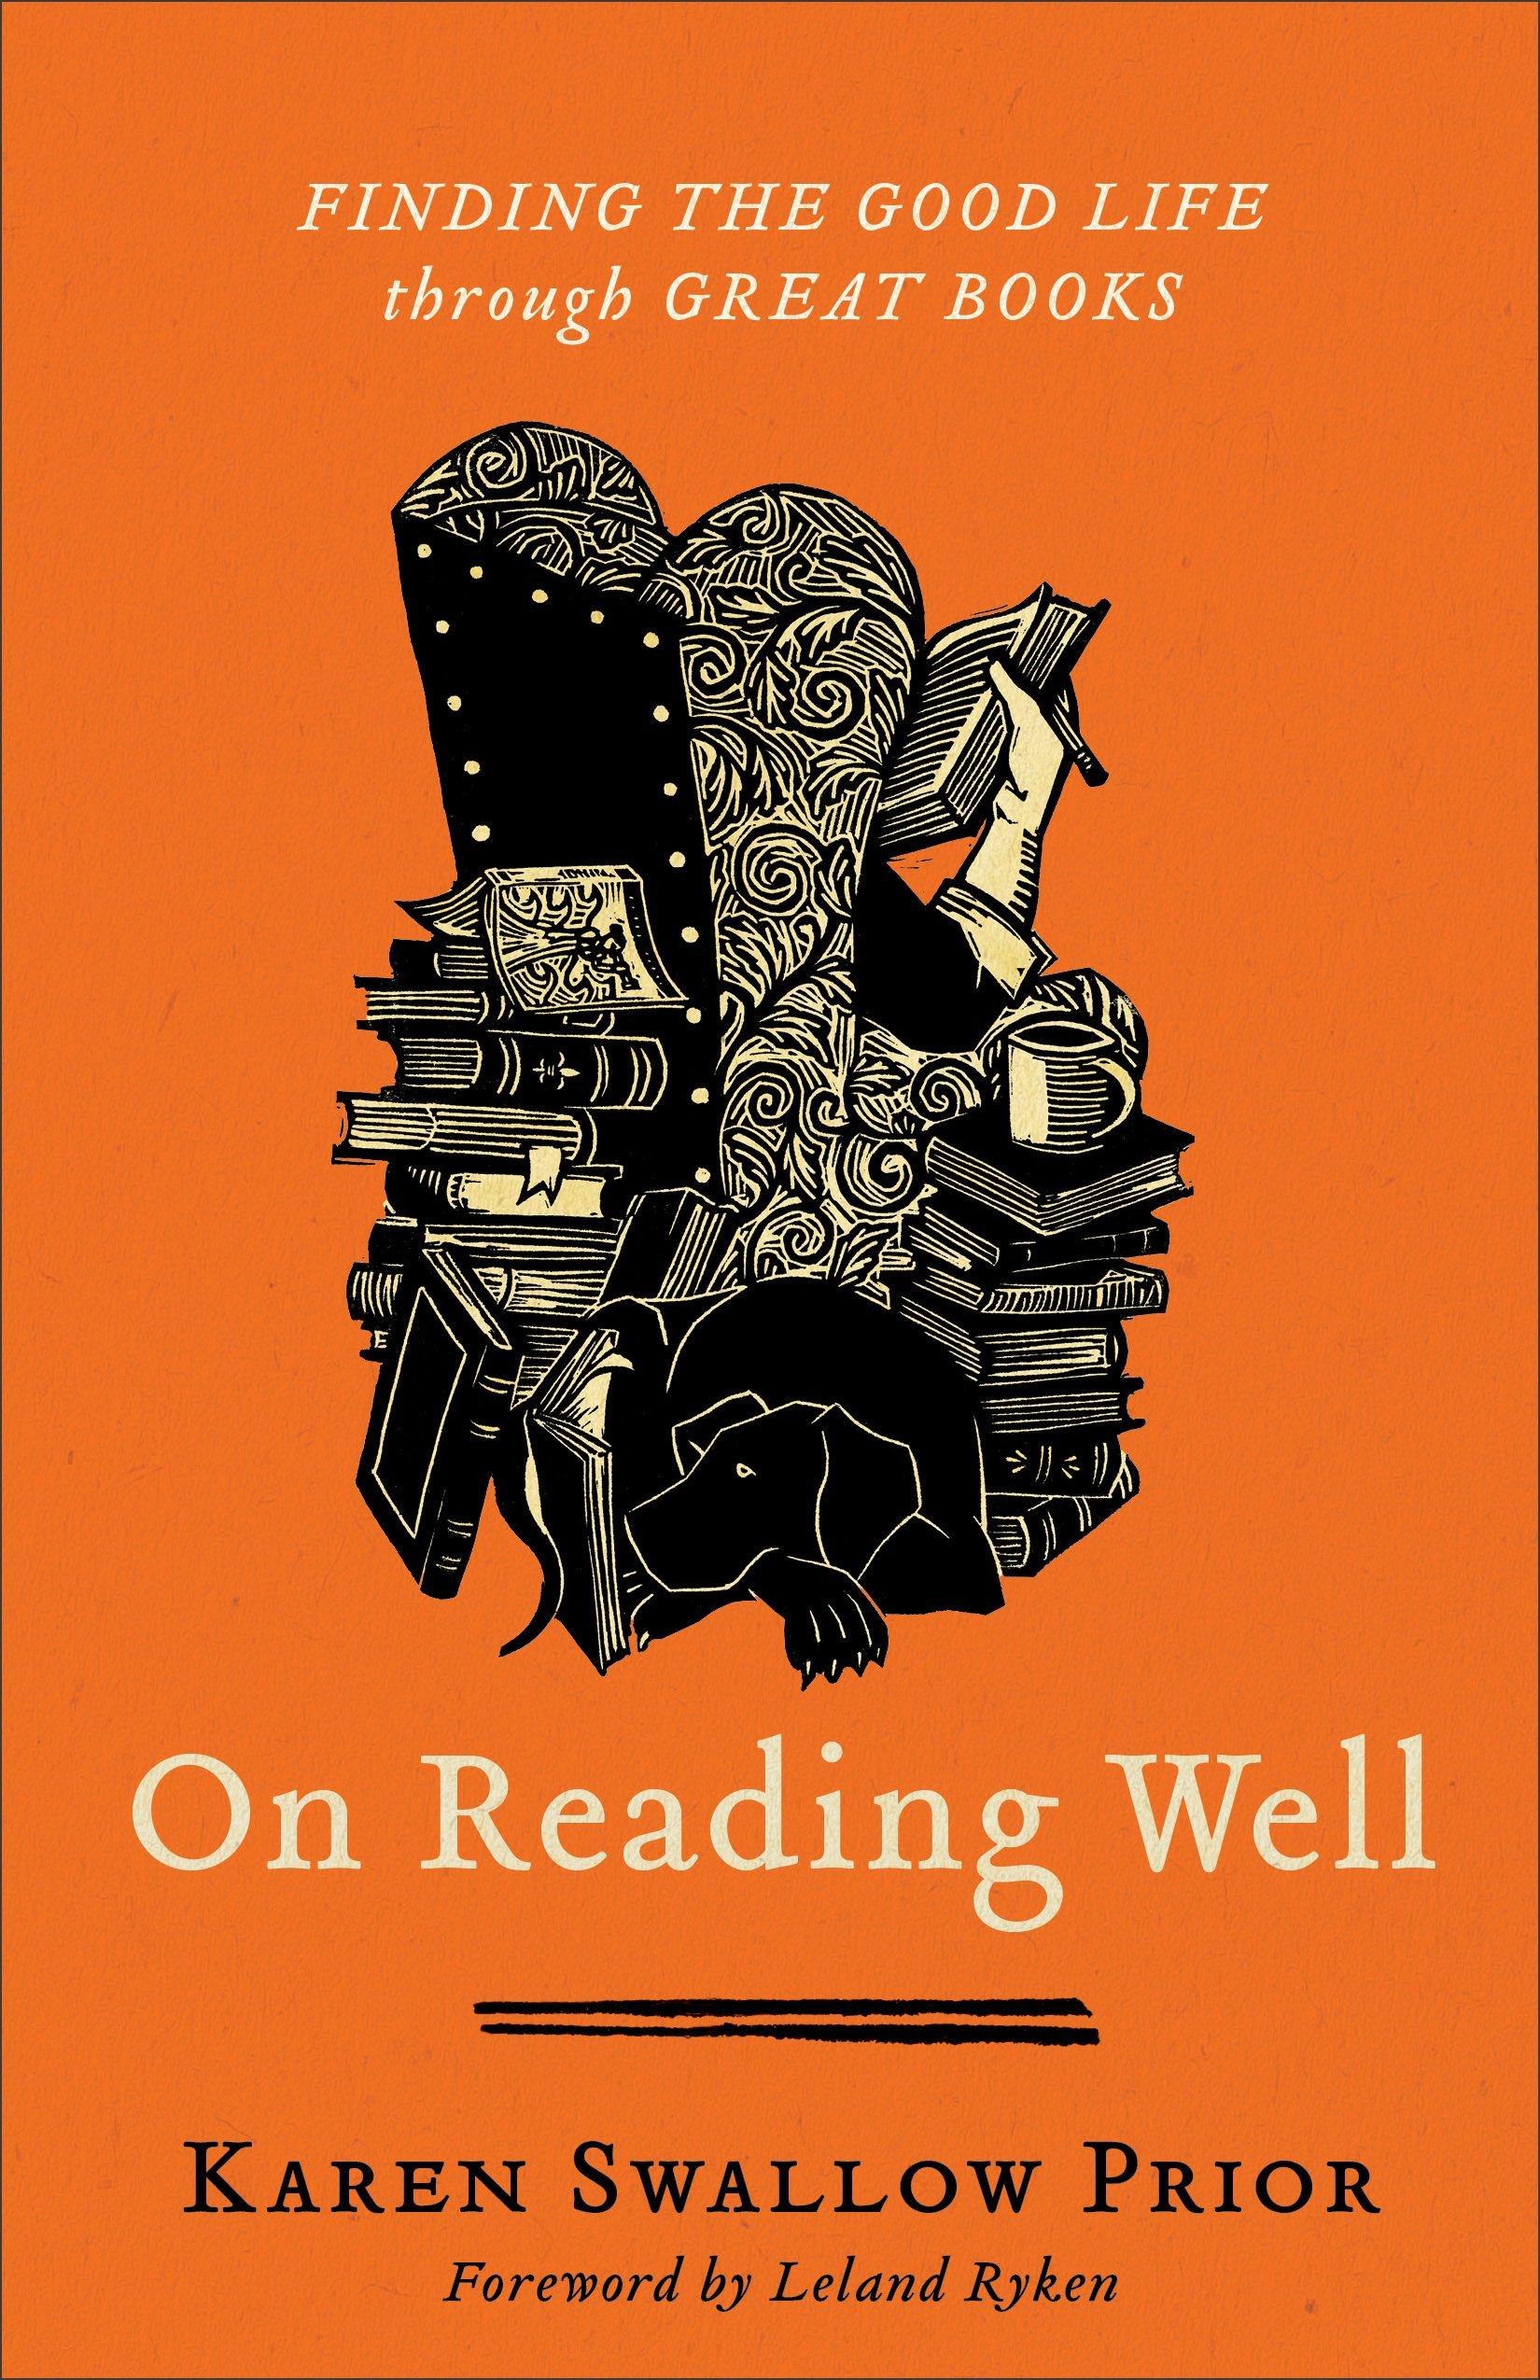 On Reading Well: Finding the Good Life Through Great Books by Karen Swallow Prior, ISBN: 9781587433962